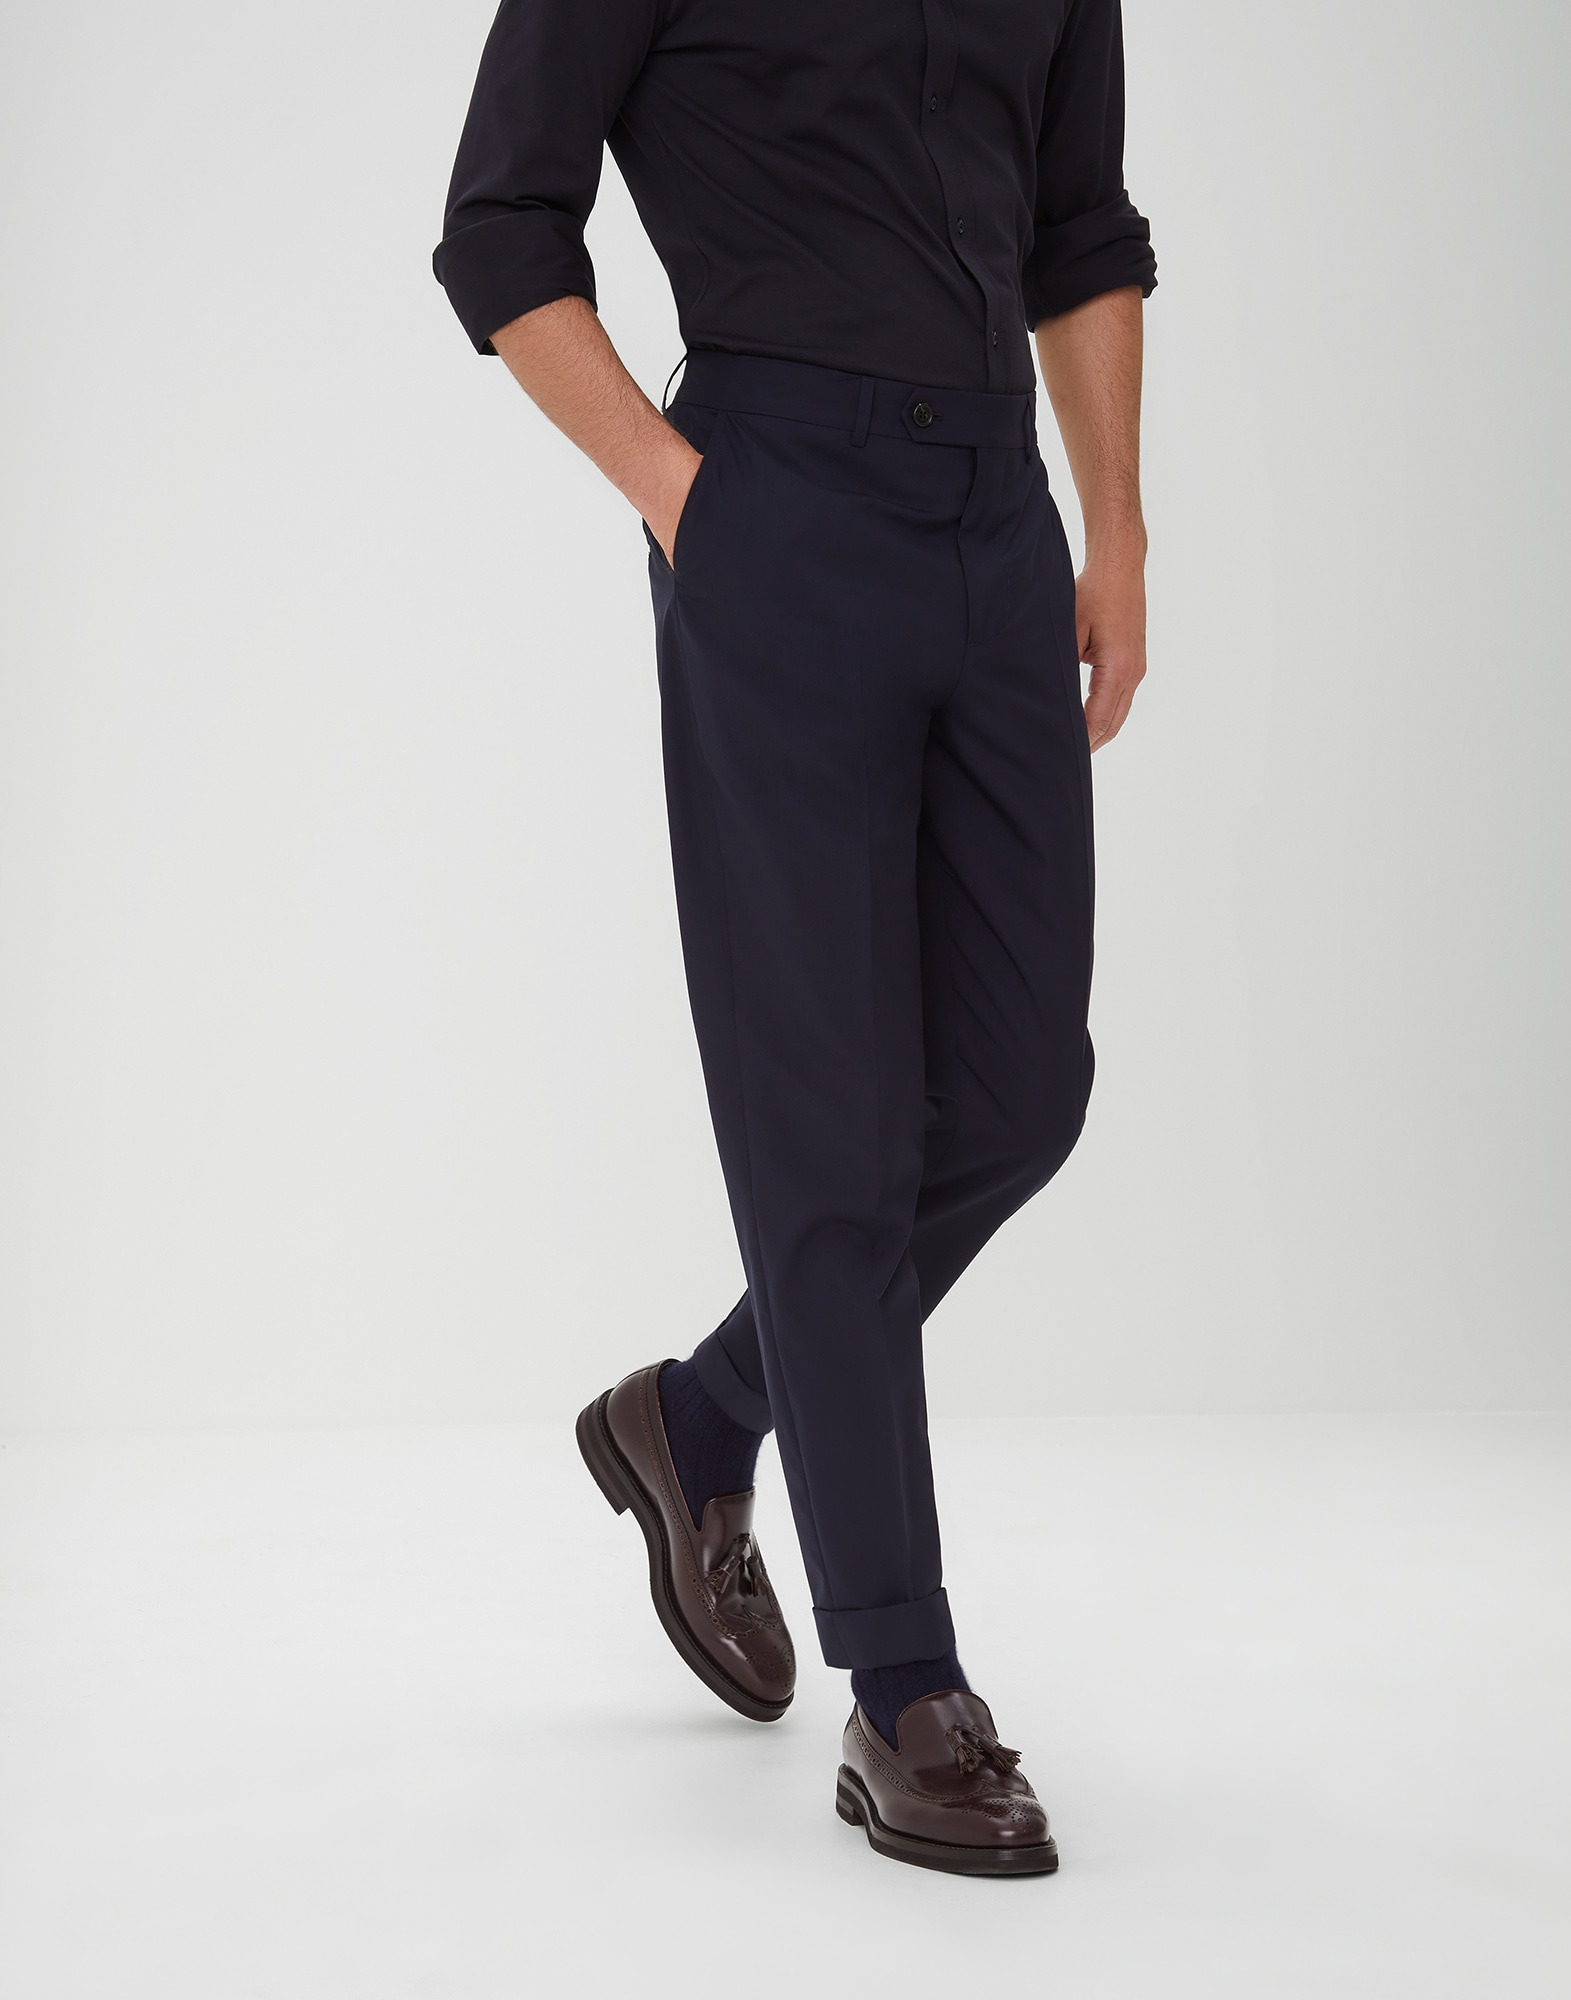 Trousers Navy Blue Man 0 - Brunello Cucinelli